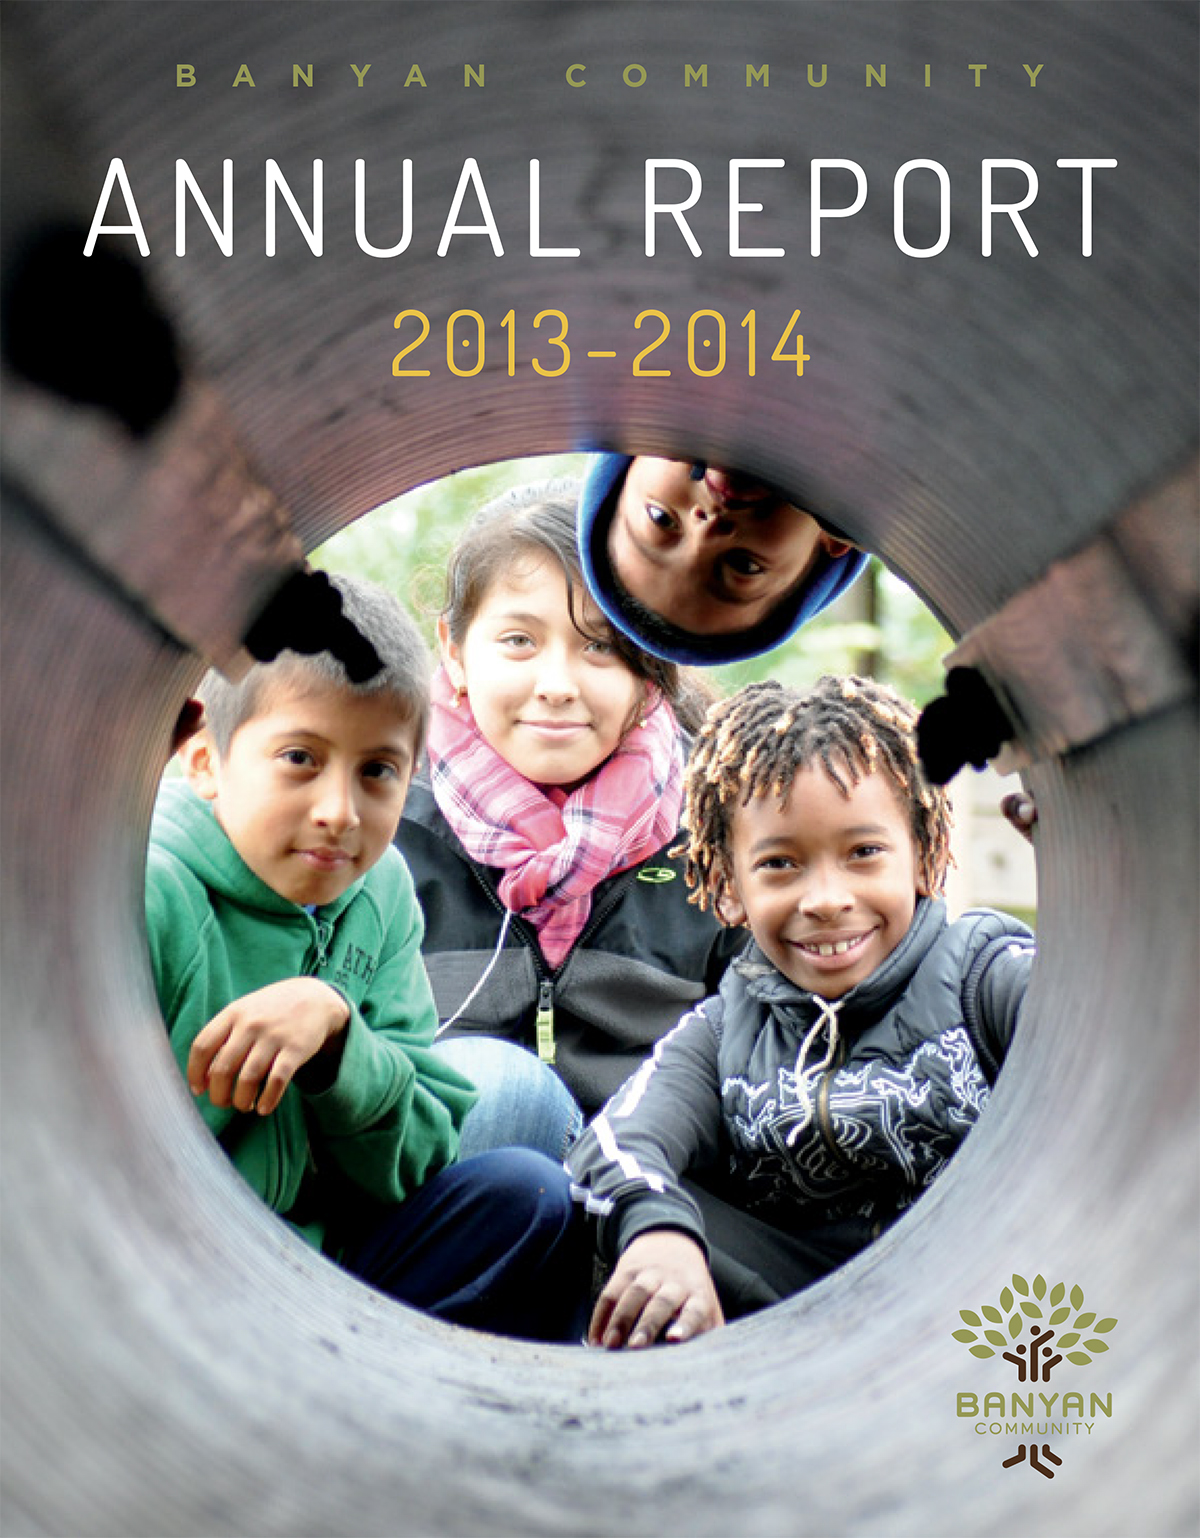 Banyan Community's 2013-2014 annual report cover